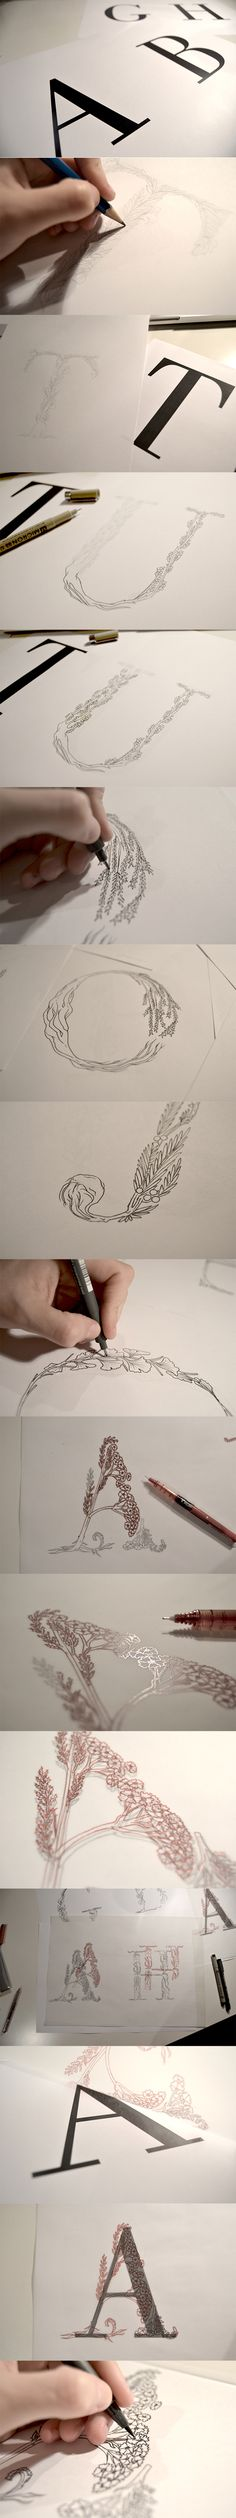 HERBARIUM TYPOGRAPHY by Ana Bangueses, via Behance